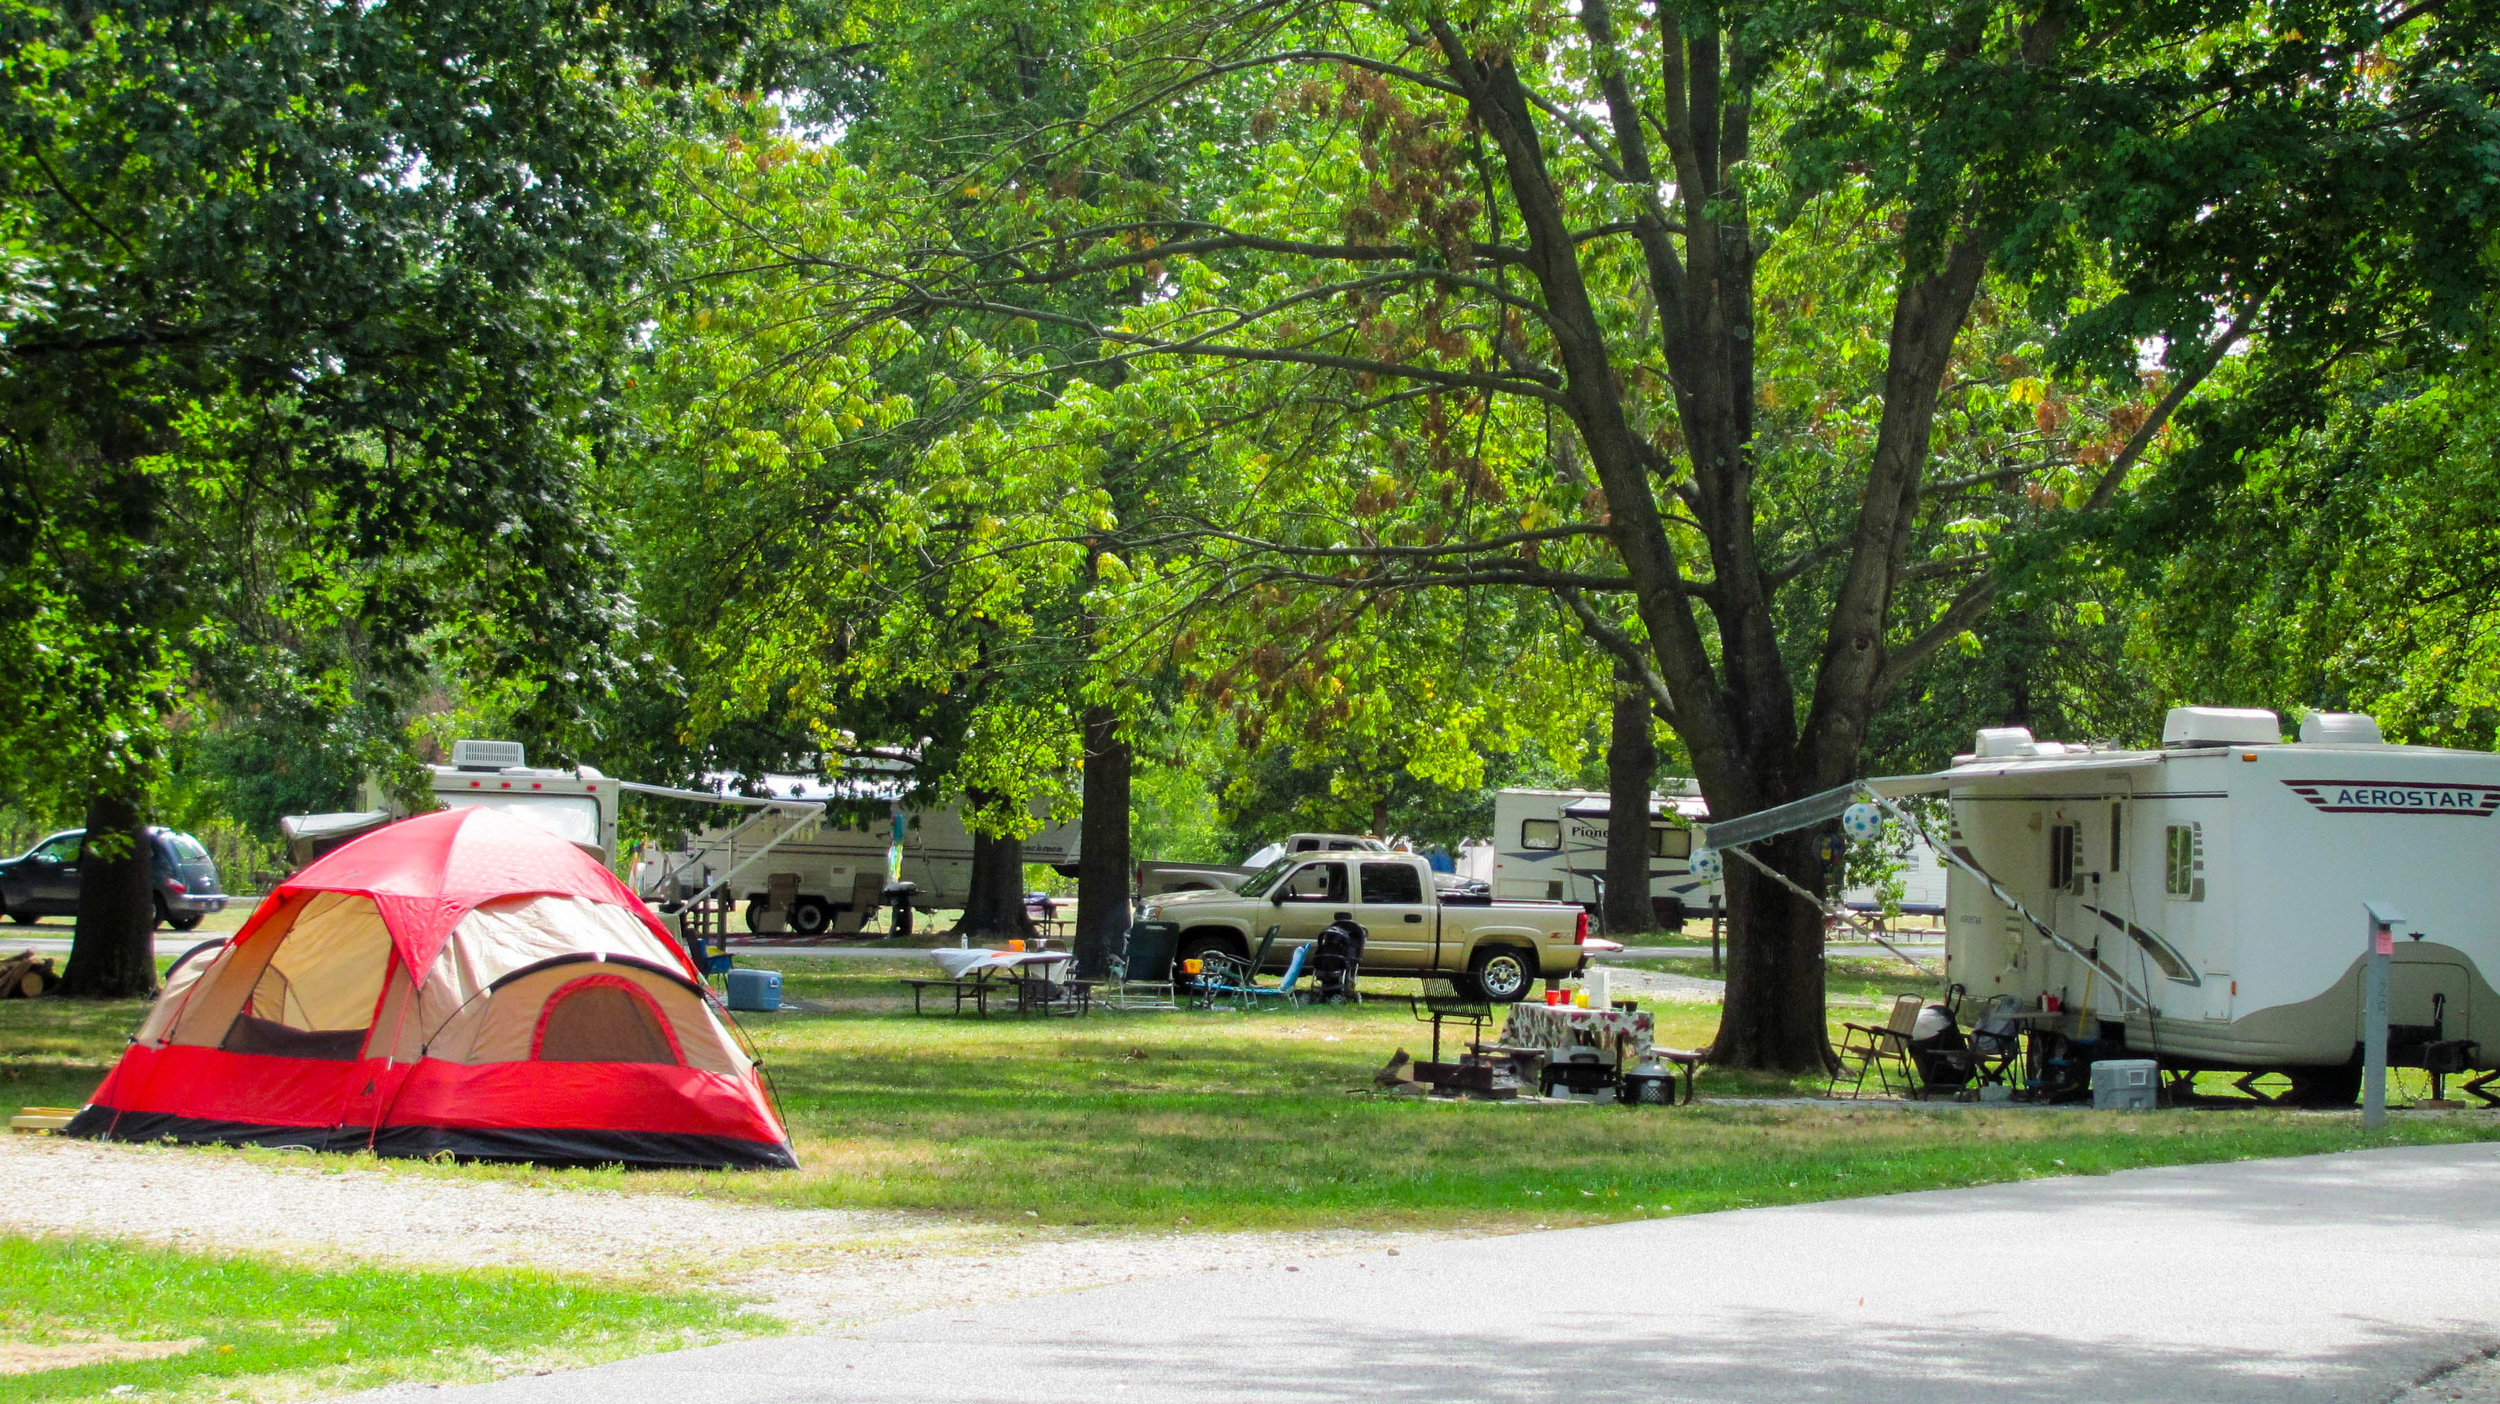 The campgrounds